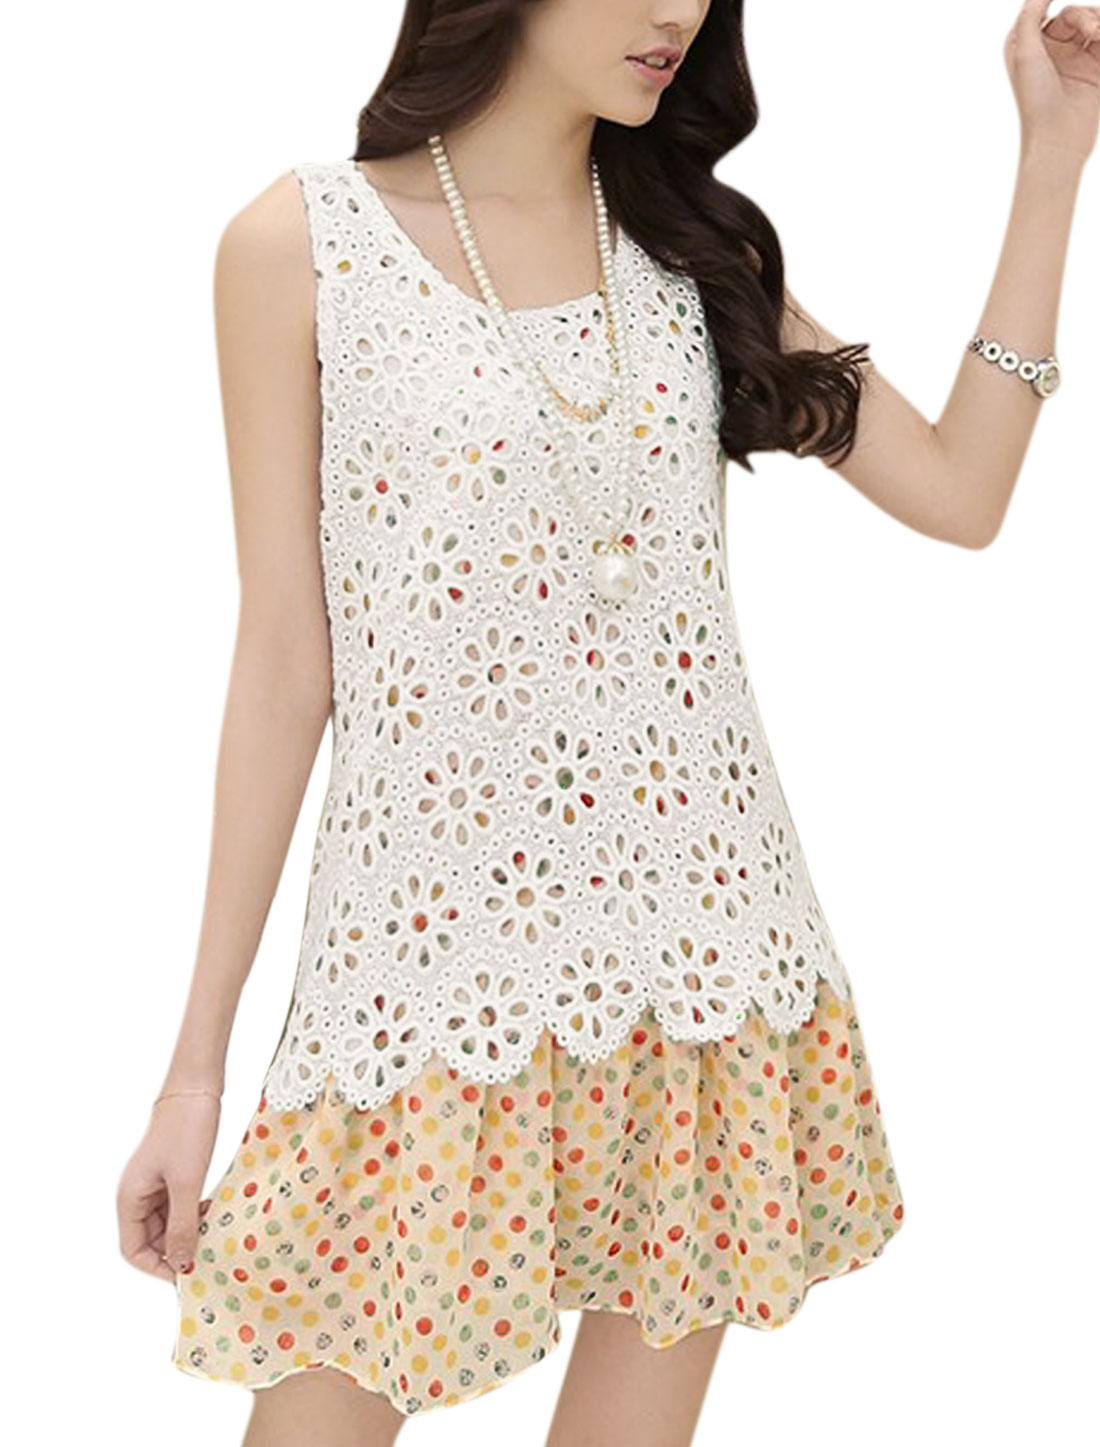 Lady Sleeveless Dots Prints Crochet Panel Dress White Red M